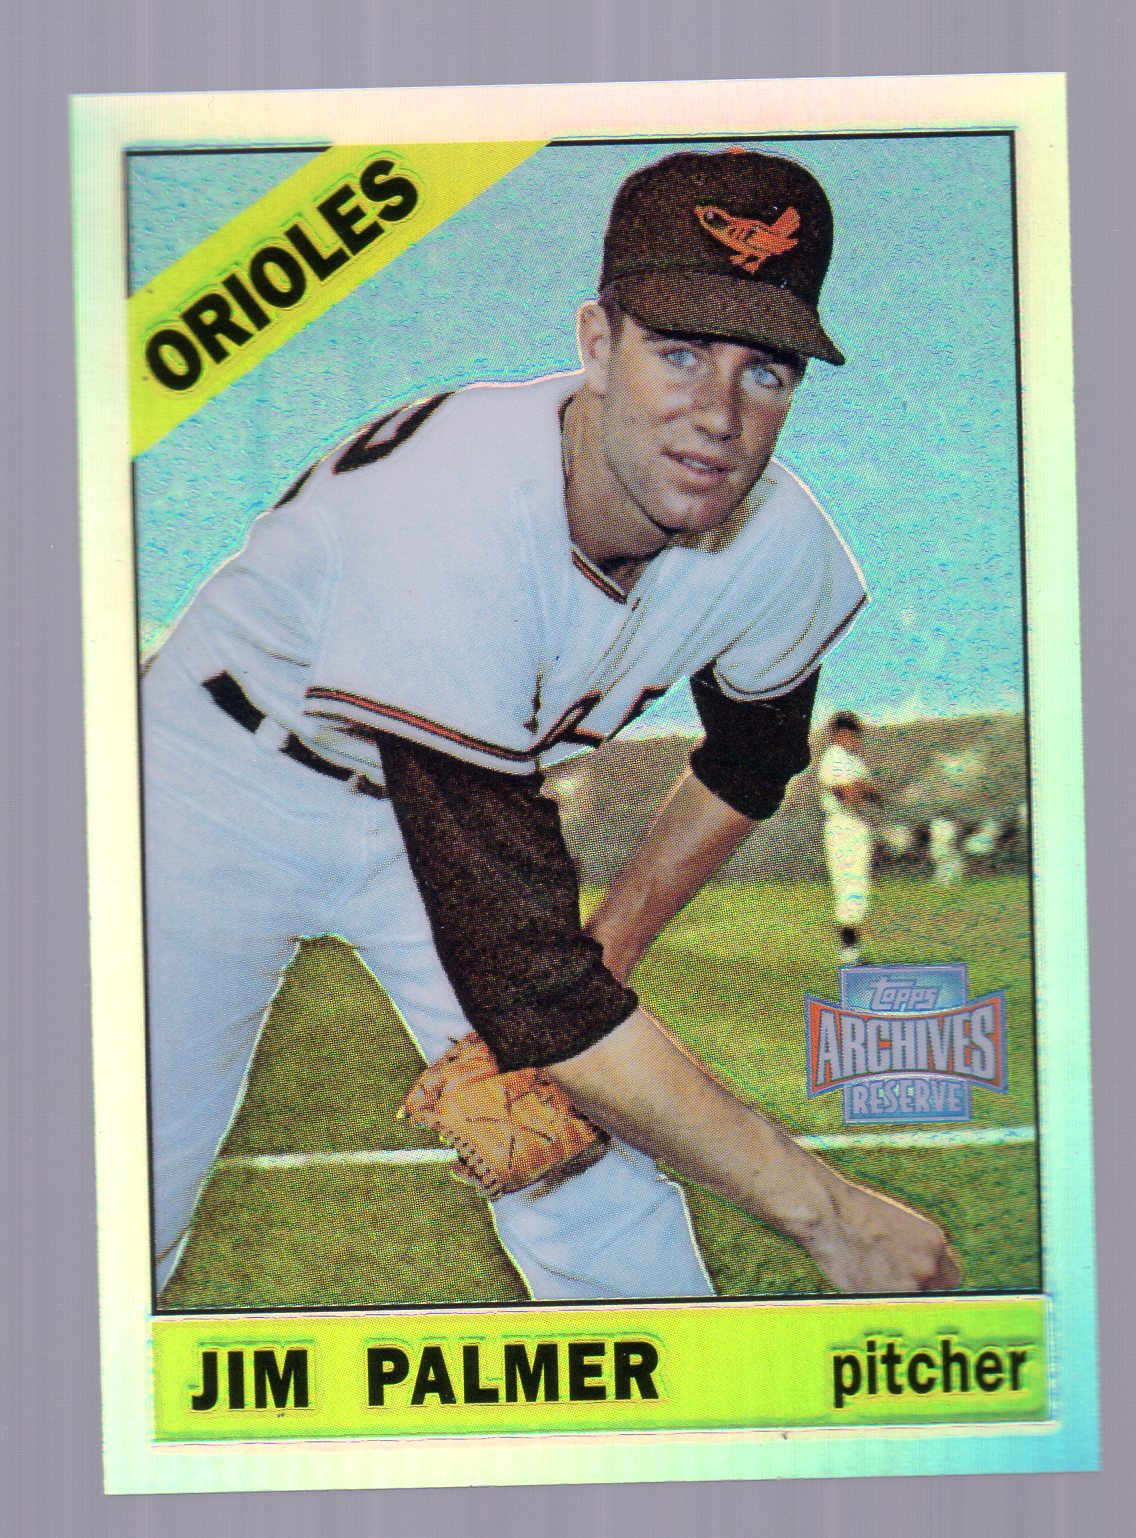 2001 Topps Archives Reserve #92 Jim Palmer 66